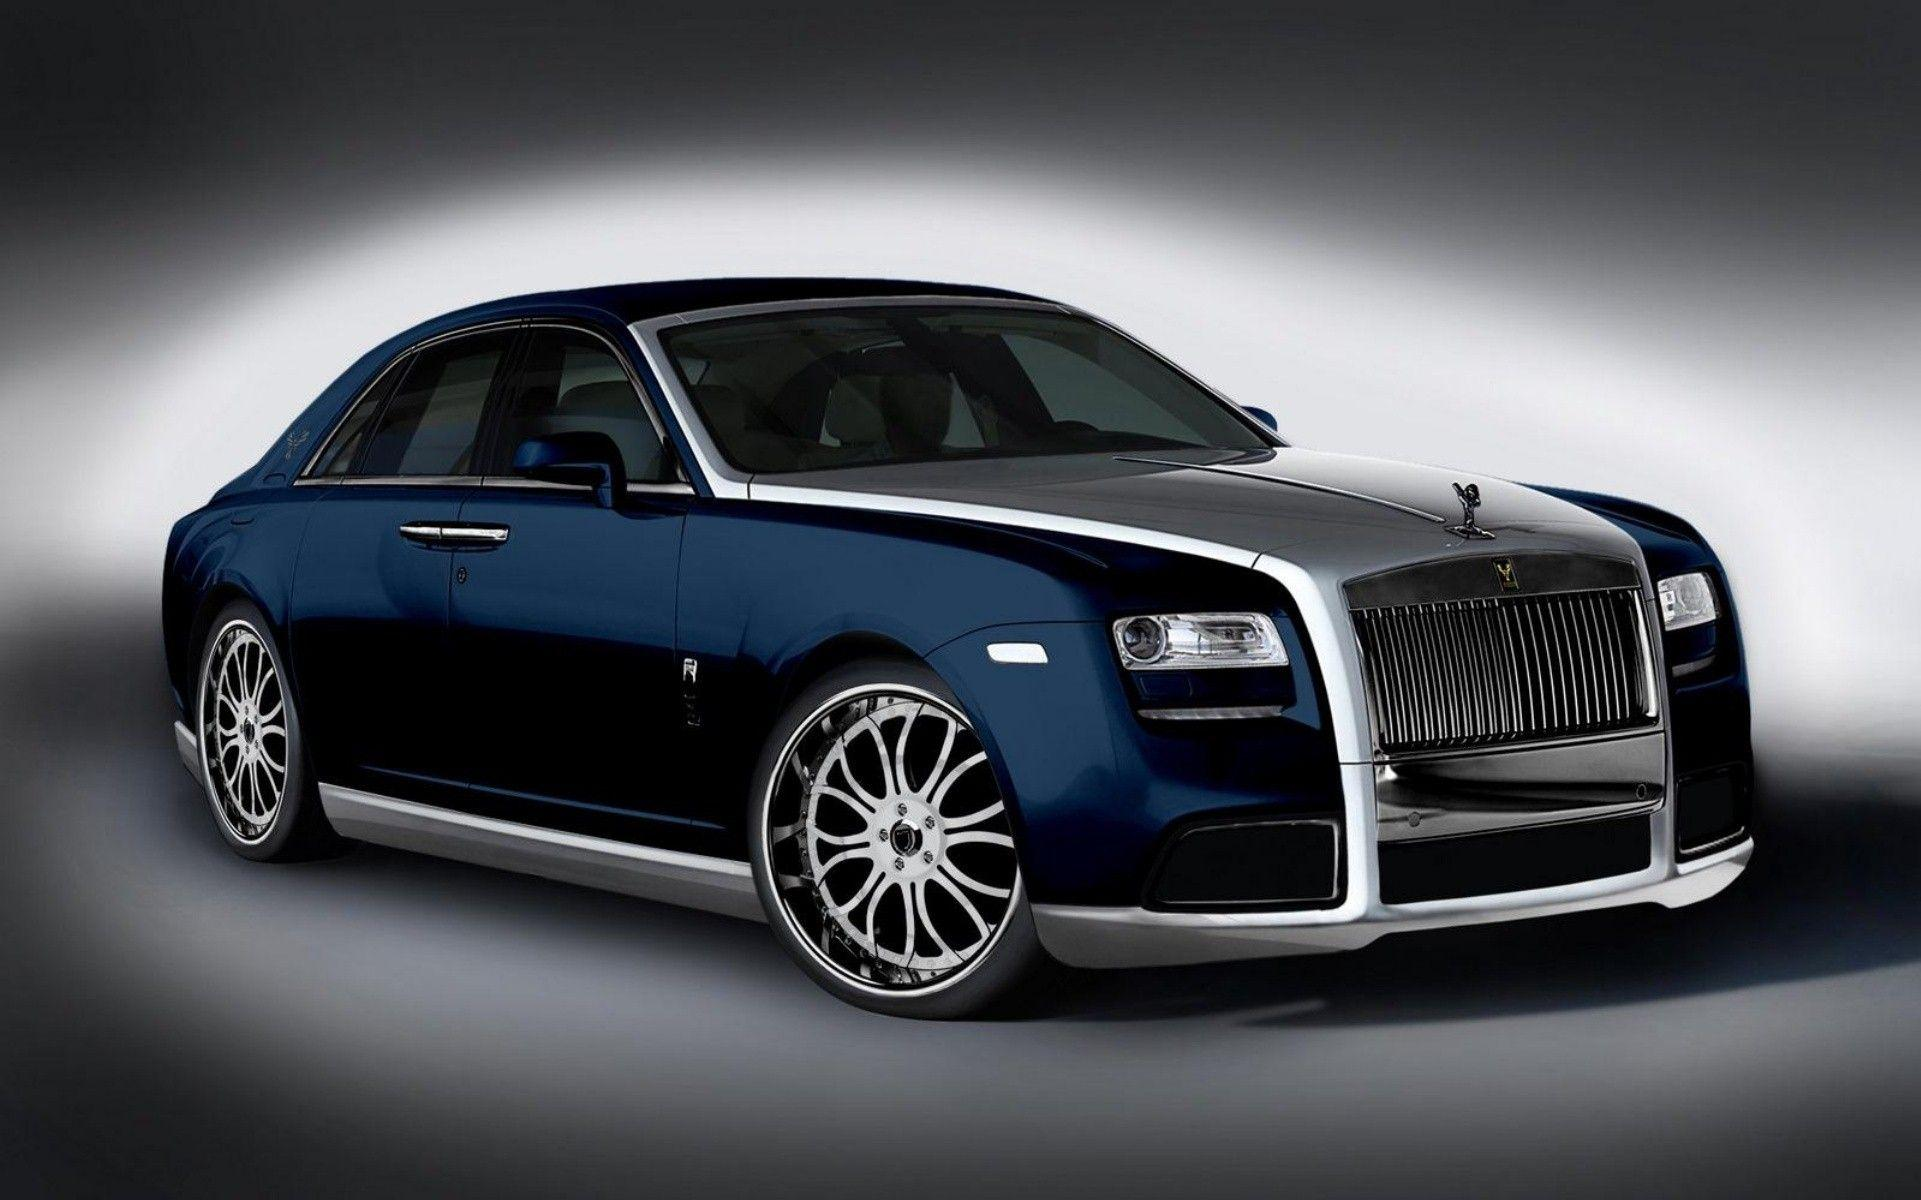 Rolls Royce Cars Wallpapers